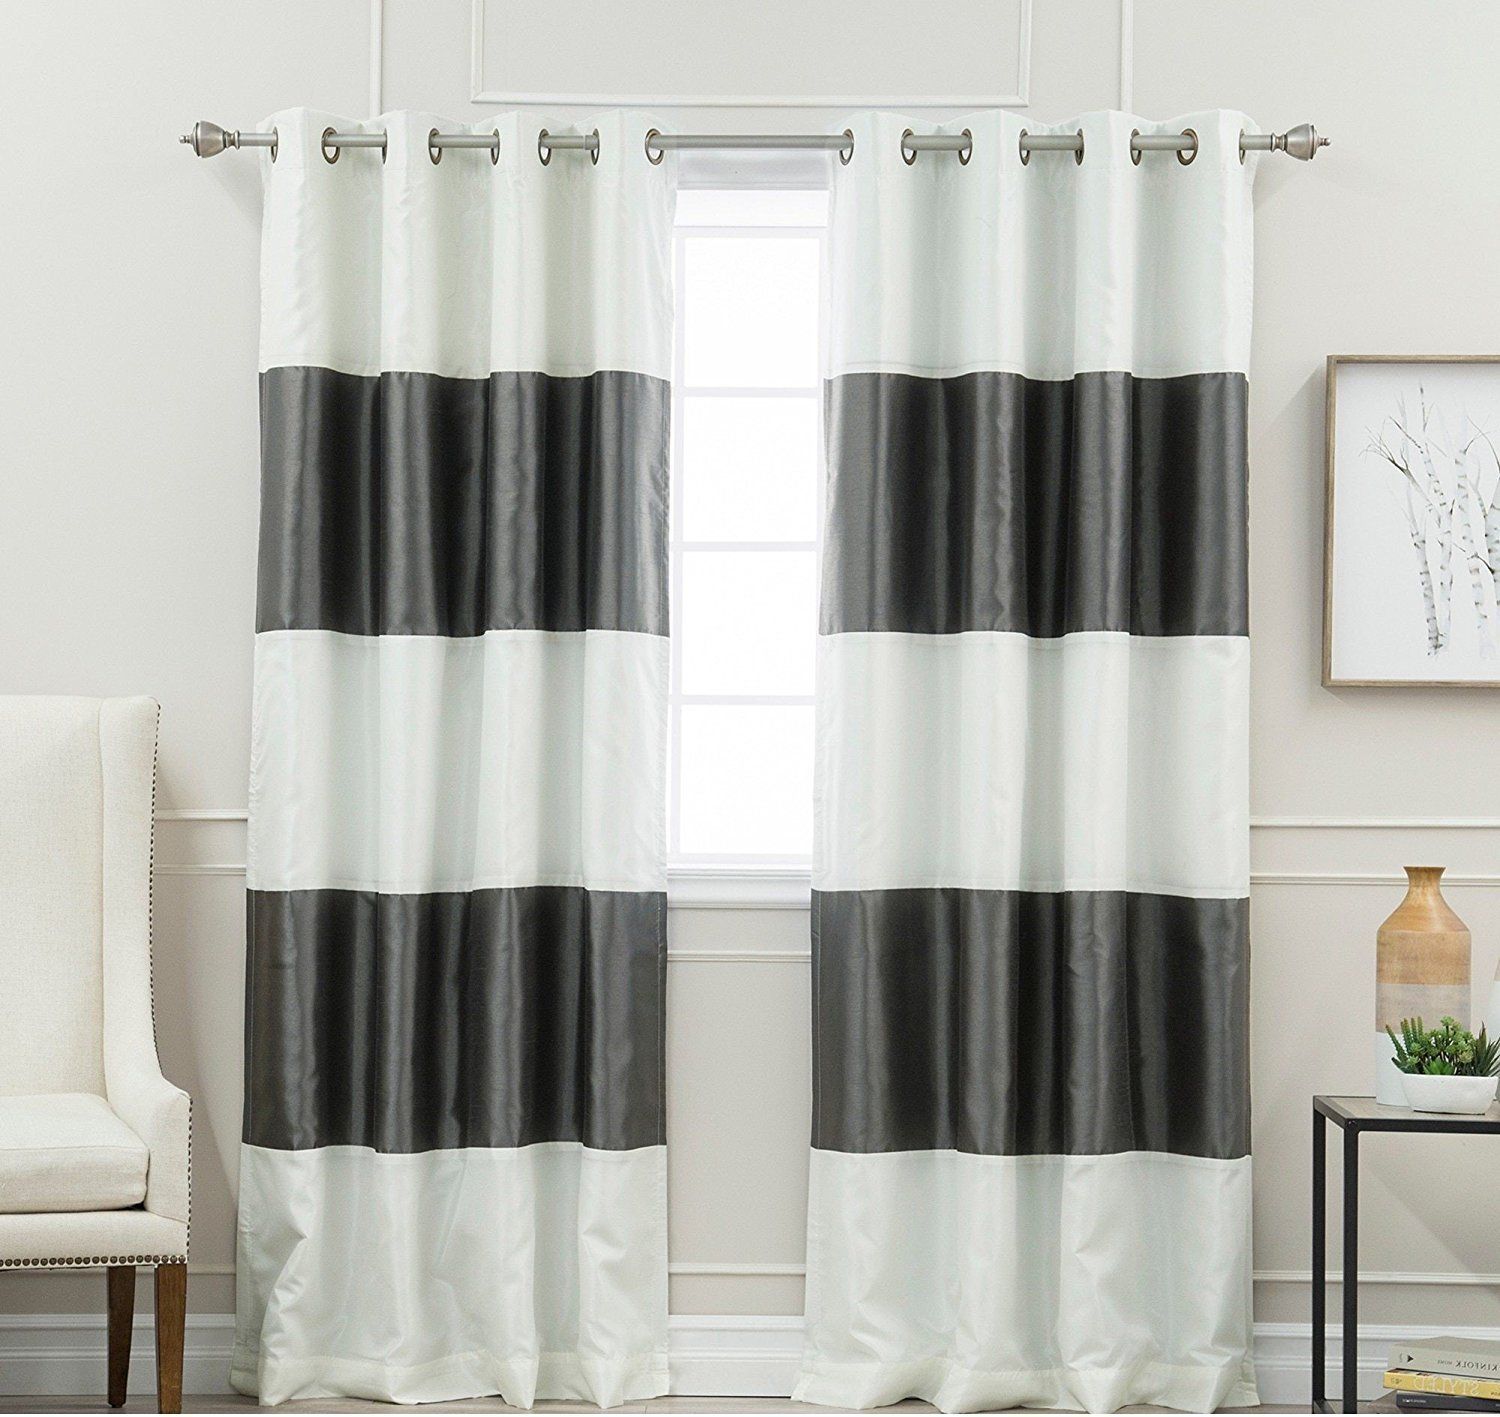 packs blackout awesome thermal draperies turquoize stripe magnificent striped design luxury curtains fresh